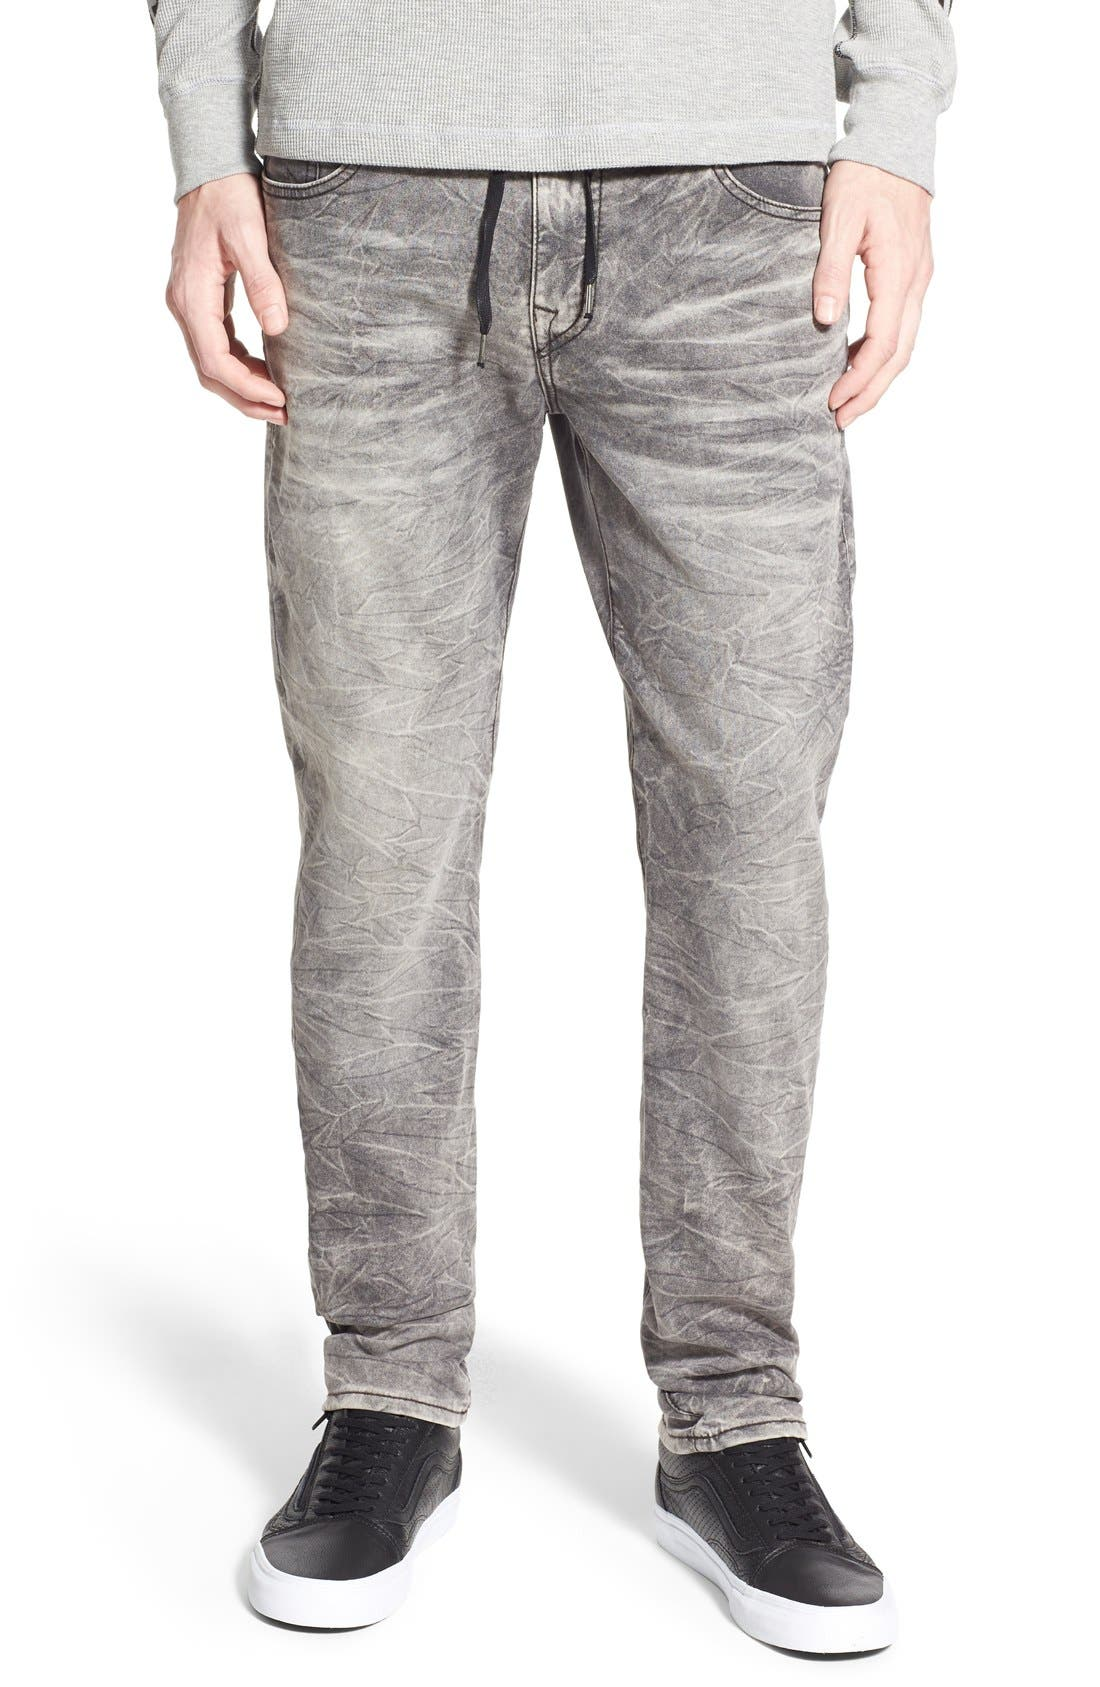 'Dean' Tapered Fit Denim Active Jogger Pants,                         Main,                         color,